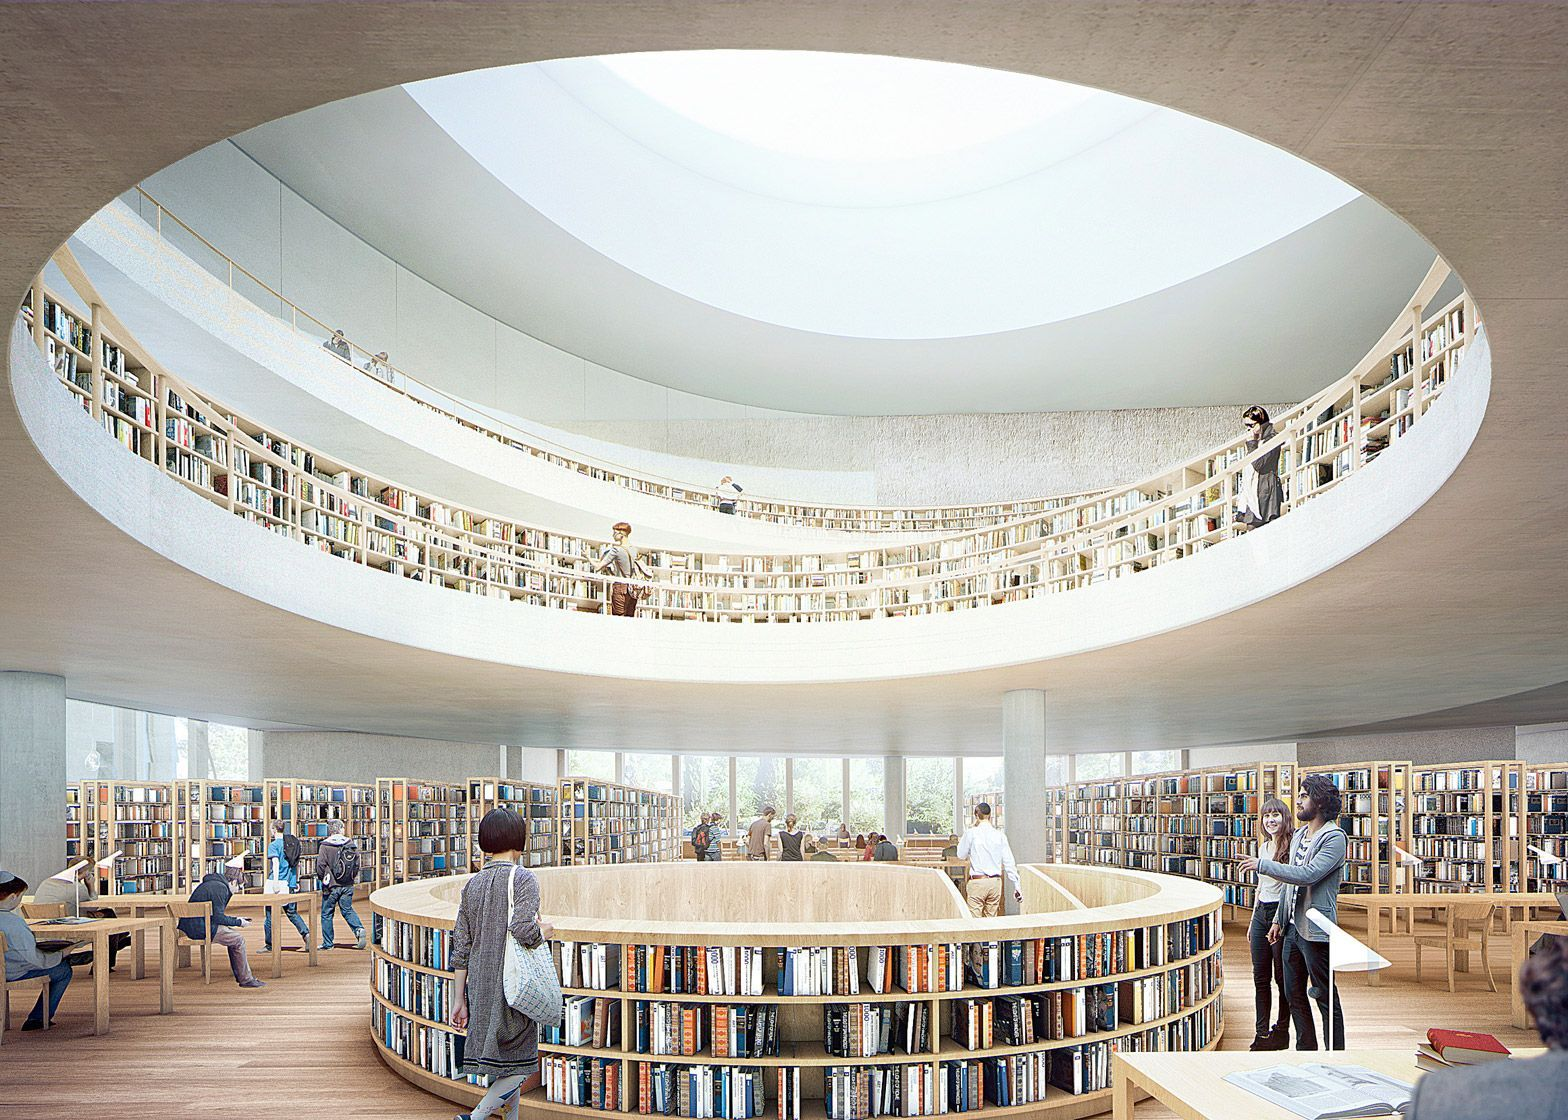 Herzog & de Meuron new images of National library of